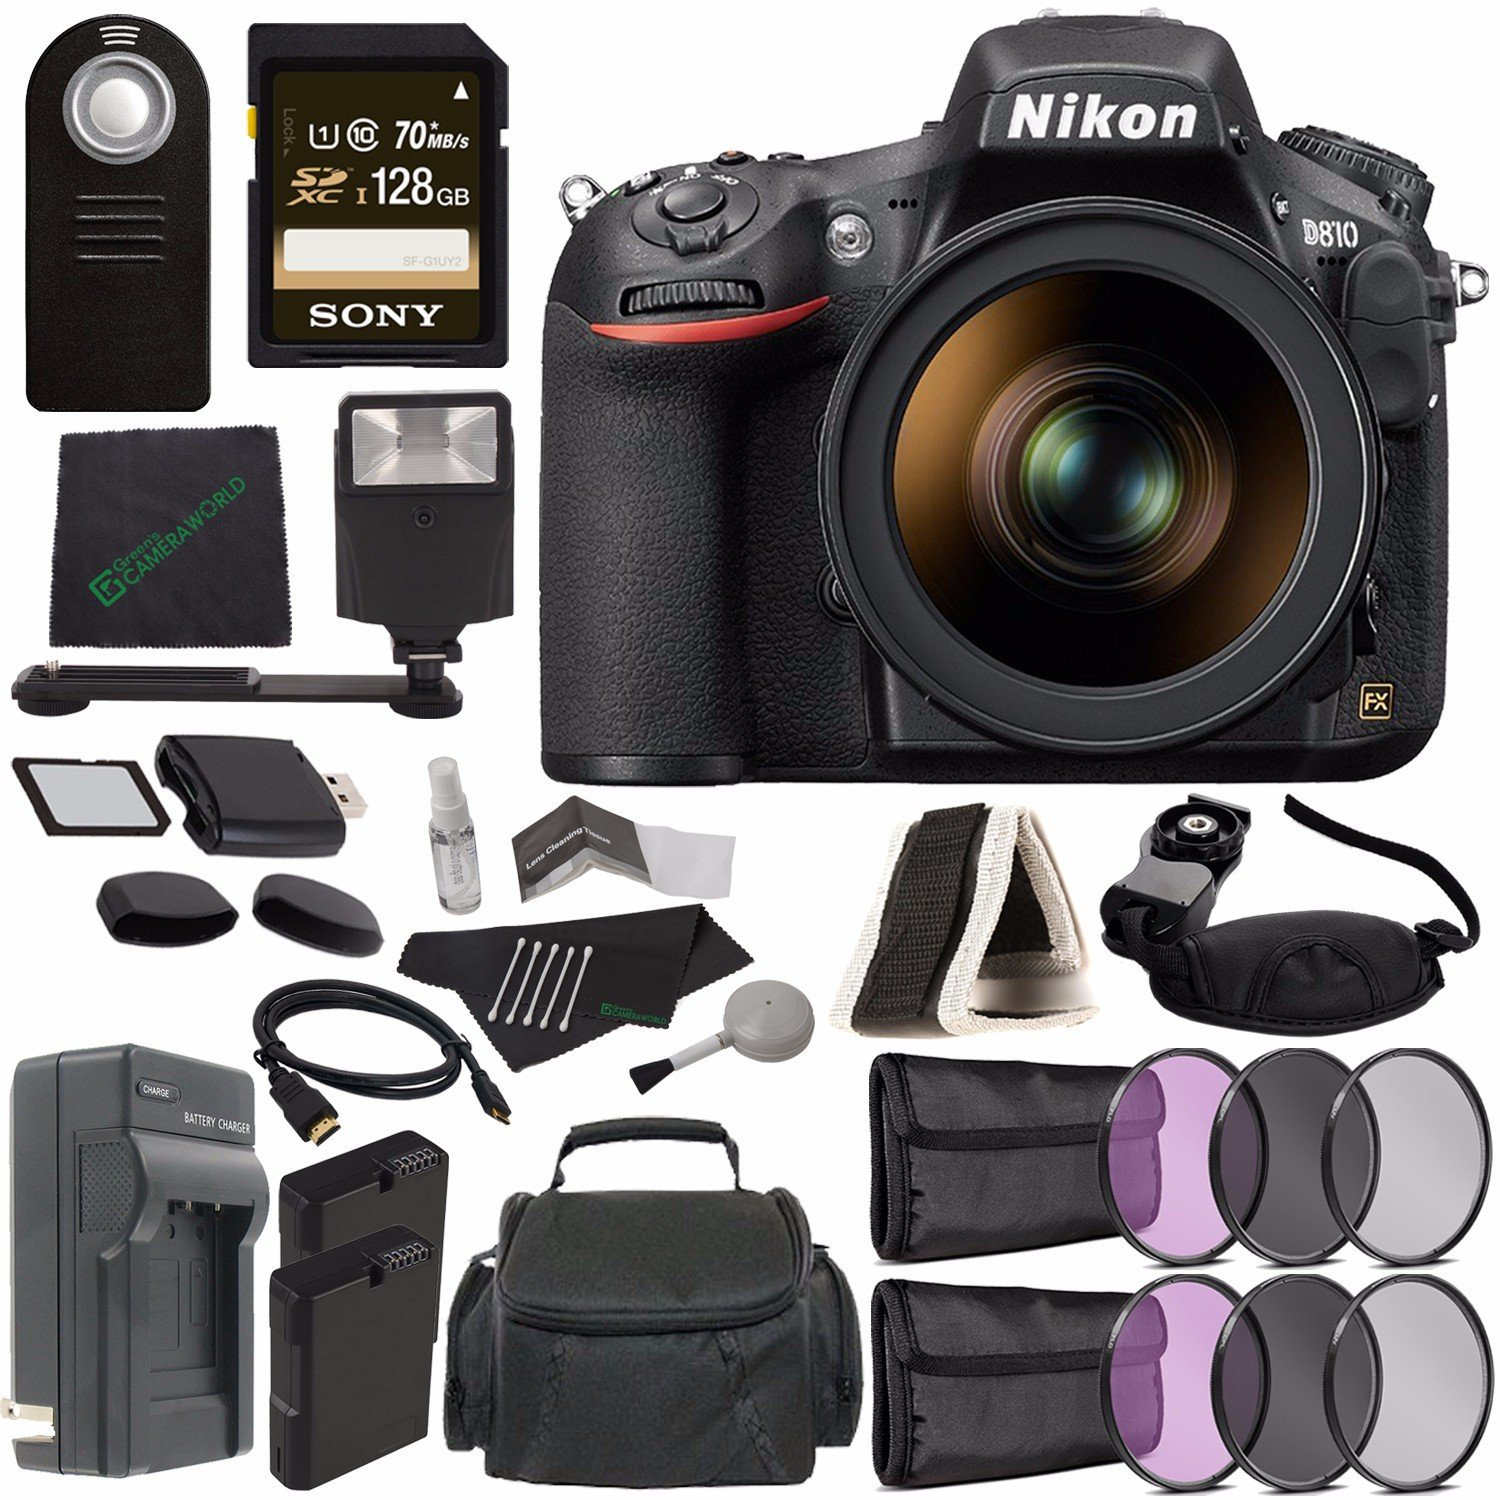 Nikon D810 DSLR Camera with 24-120mm Lens + Rechargable Li-Ion Battery + External Charger + Sony 128GB SDXC Card + HDMI Cable + Remote + Memory Card Wallet + Memory Card Reader + Flash Bundle